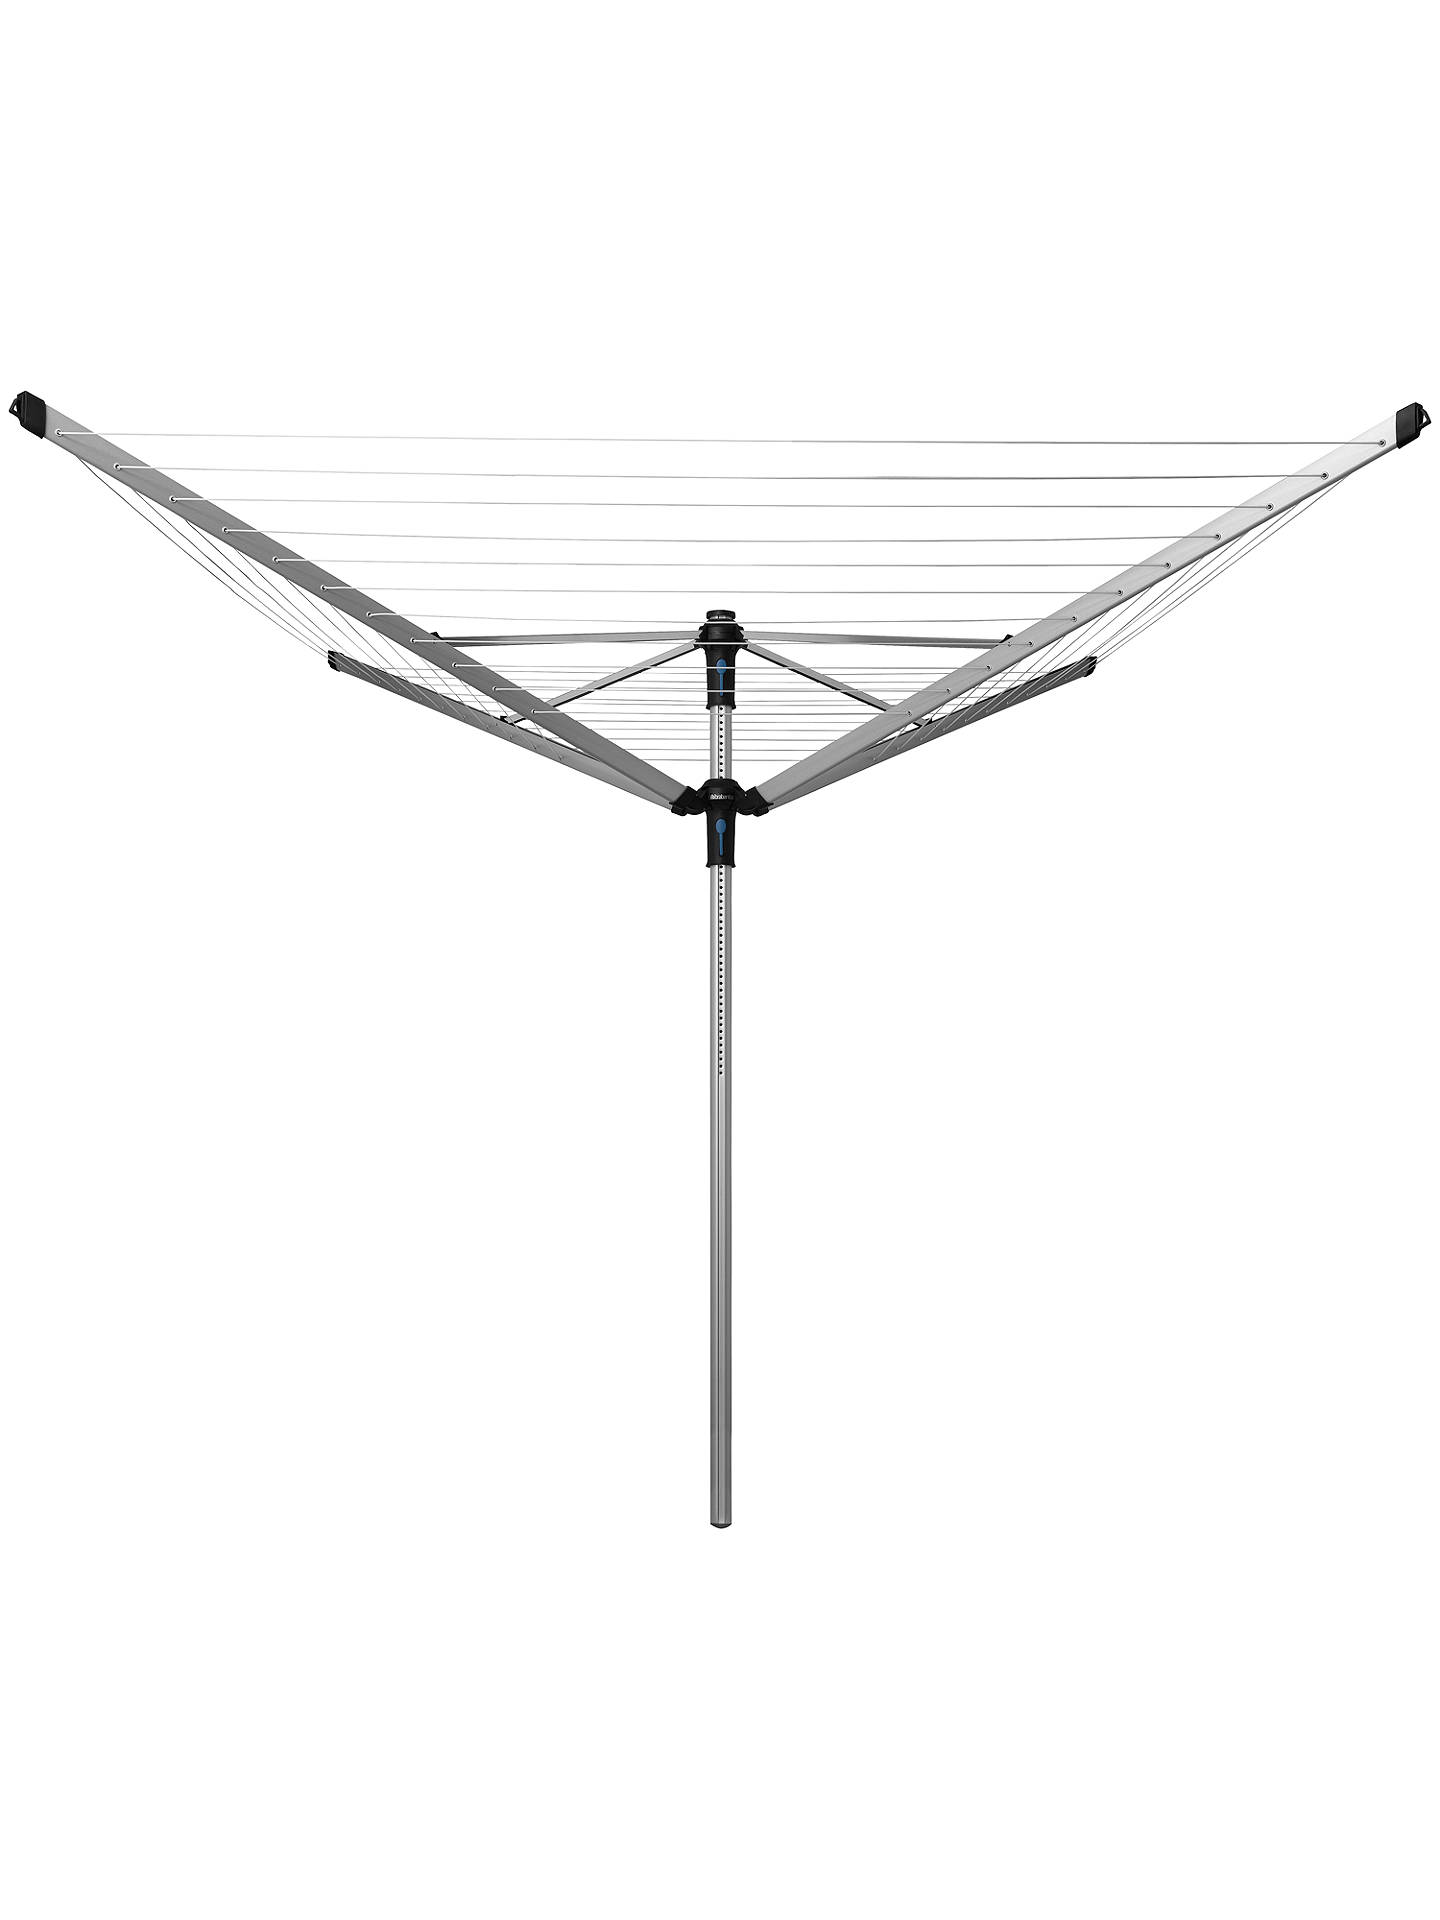 BuyBrabantia Lift-O-Matic Advance Rotary Clothes Outdoor Airer Washing Line, with Ground Tube, Cover and Peg Bag, 60m Online at johnlewis.com